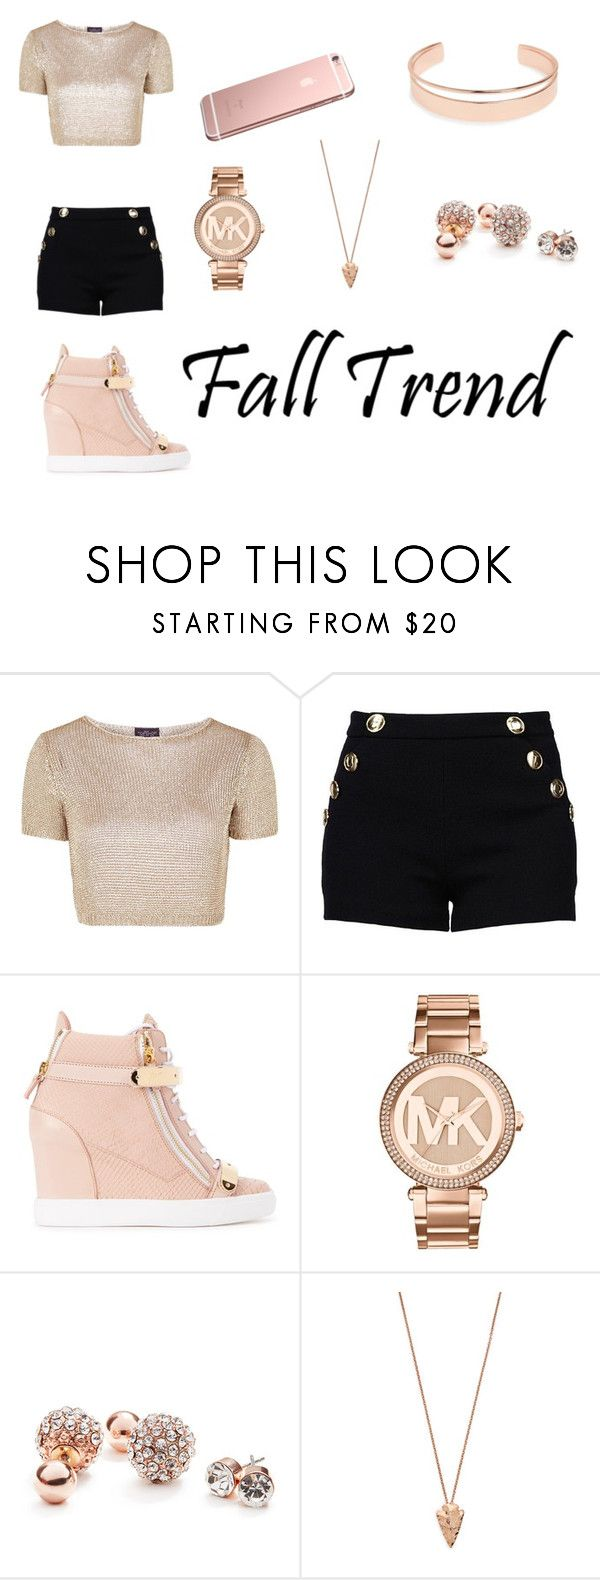 """Fall Trend"" by merissa-balgobind ❤ liked on Polyvore featuring Topshop, Boutique Moschino, Giuseppe Zanotti, Michael Kors, GUESS, Pamela Love, Leith and rosegold"